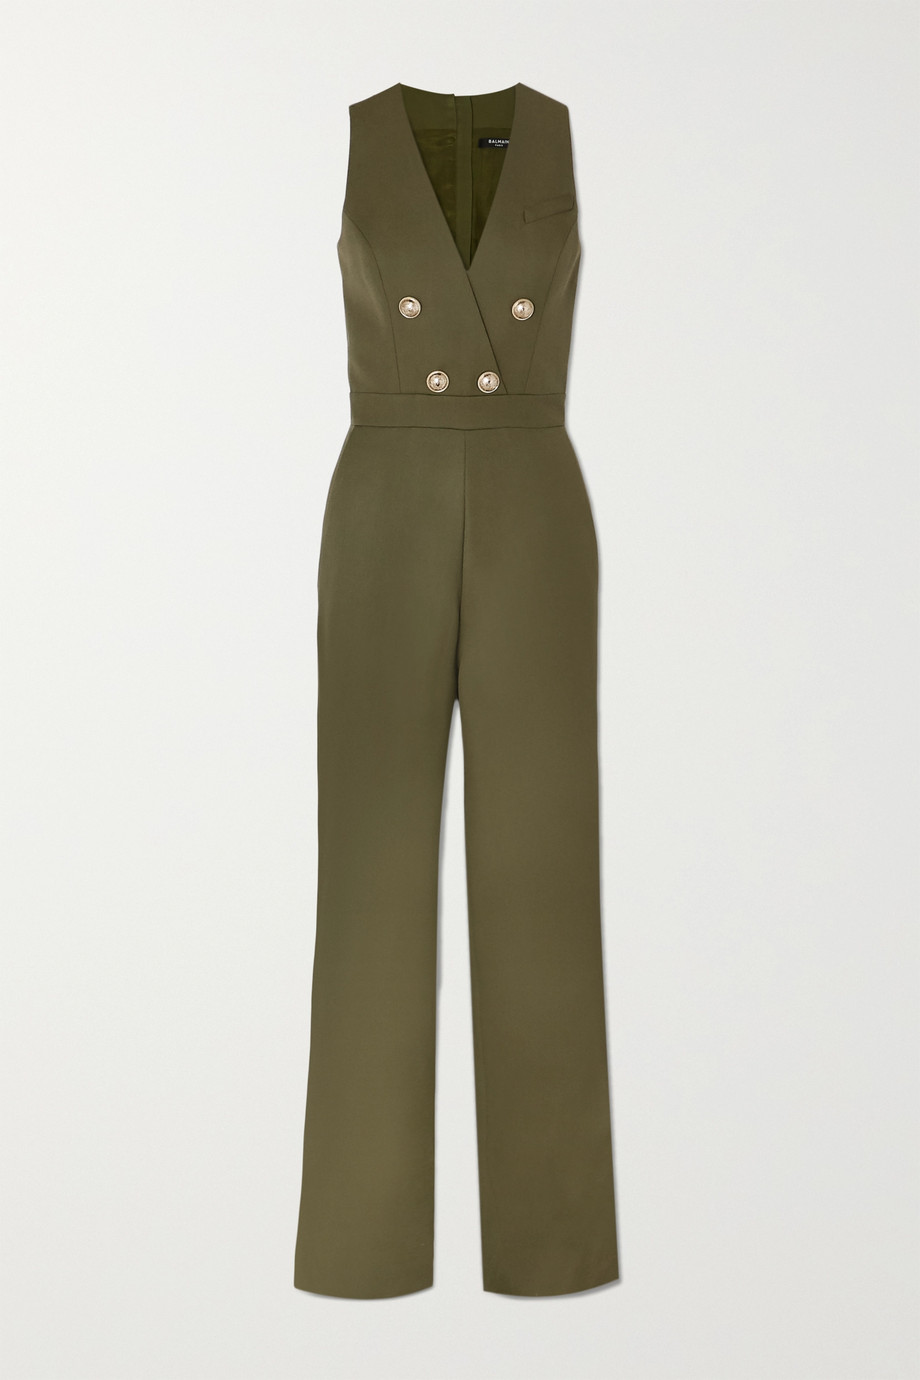 Balmain Buttoned-embellished wool jumpsuit